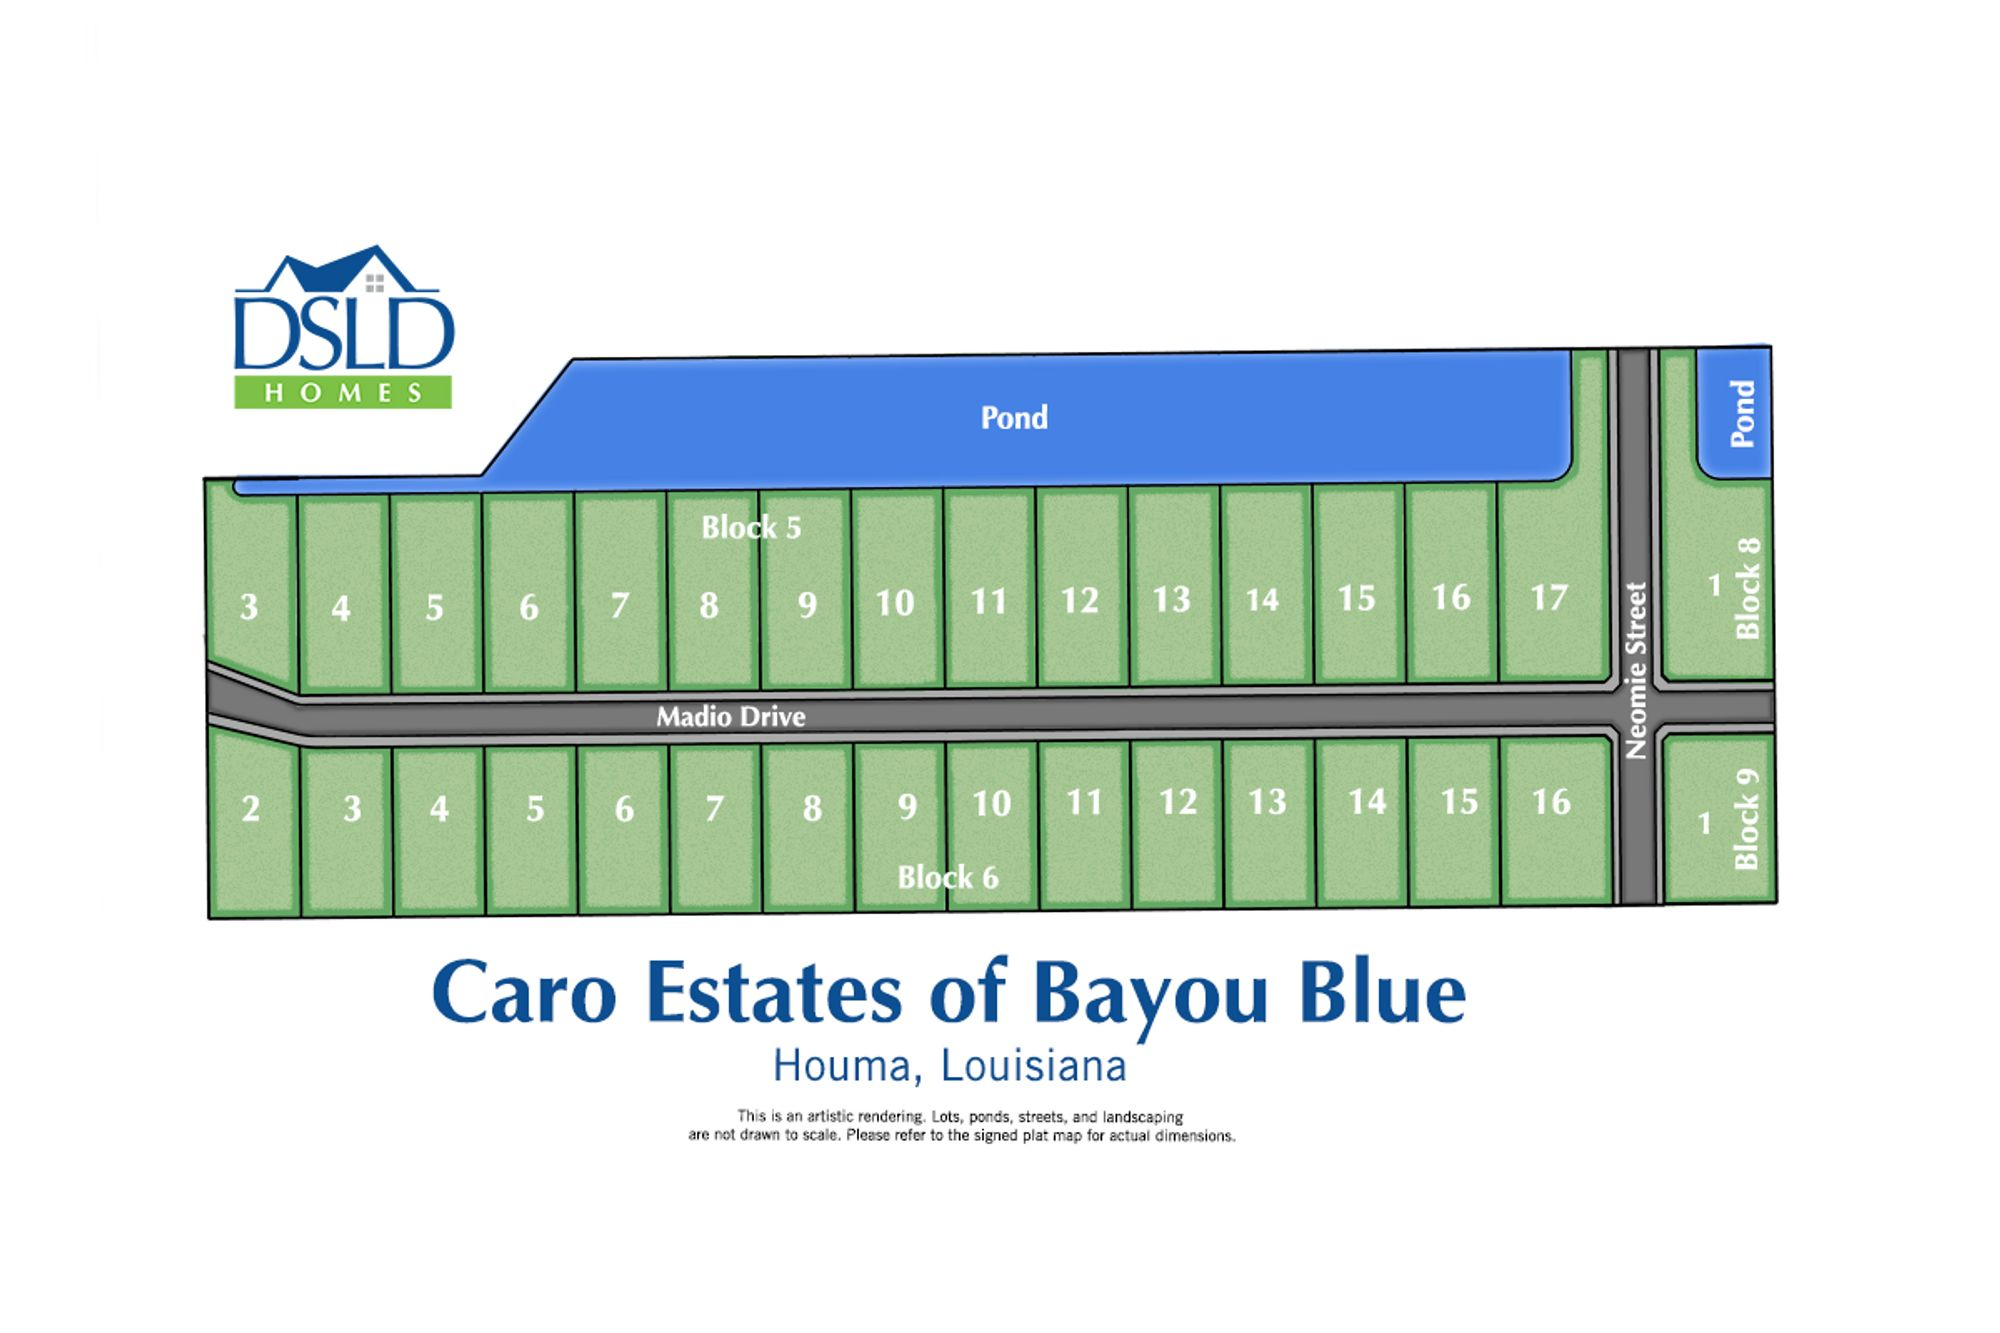 Caro Estates of Bayou Blue